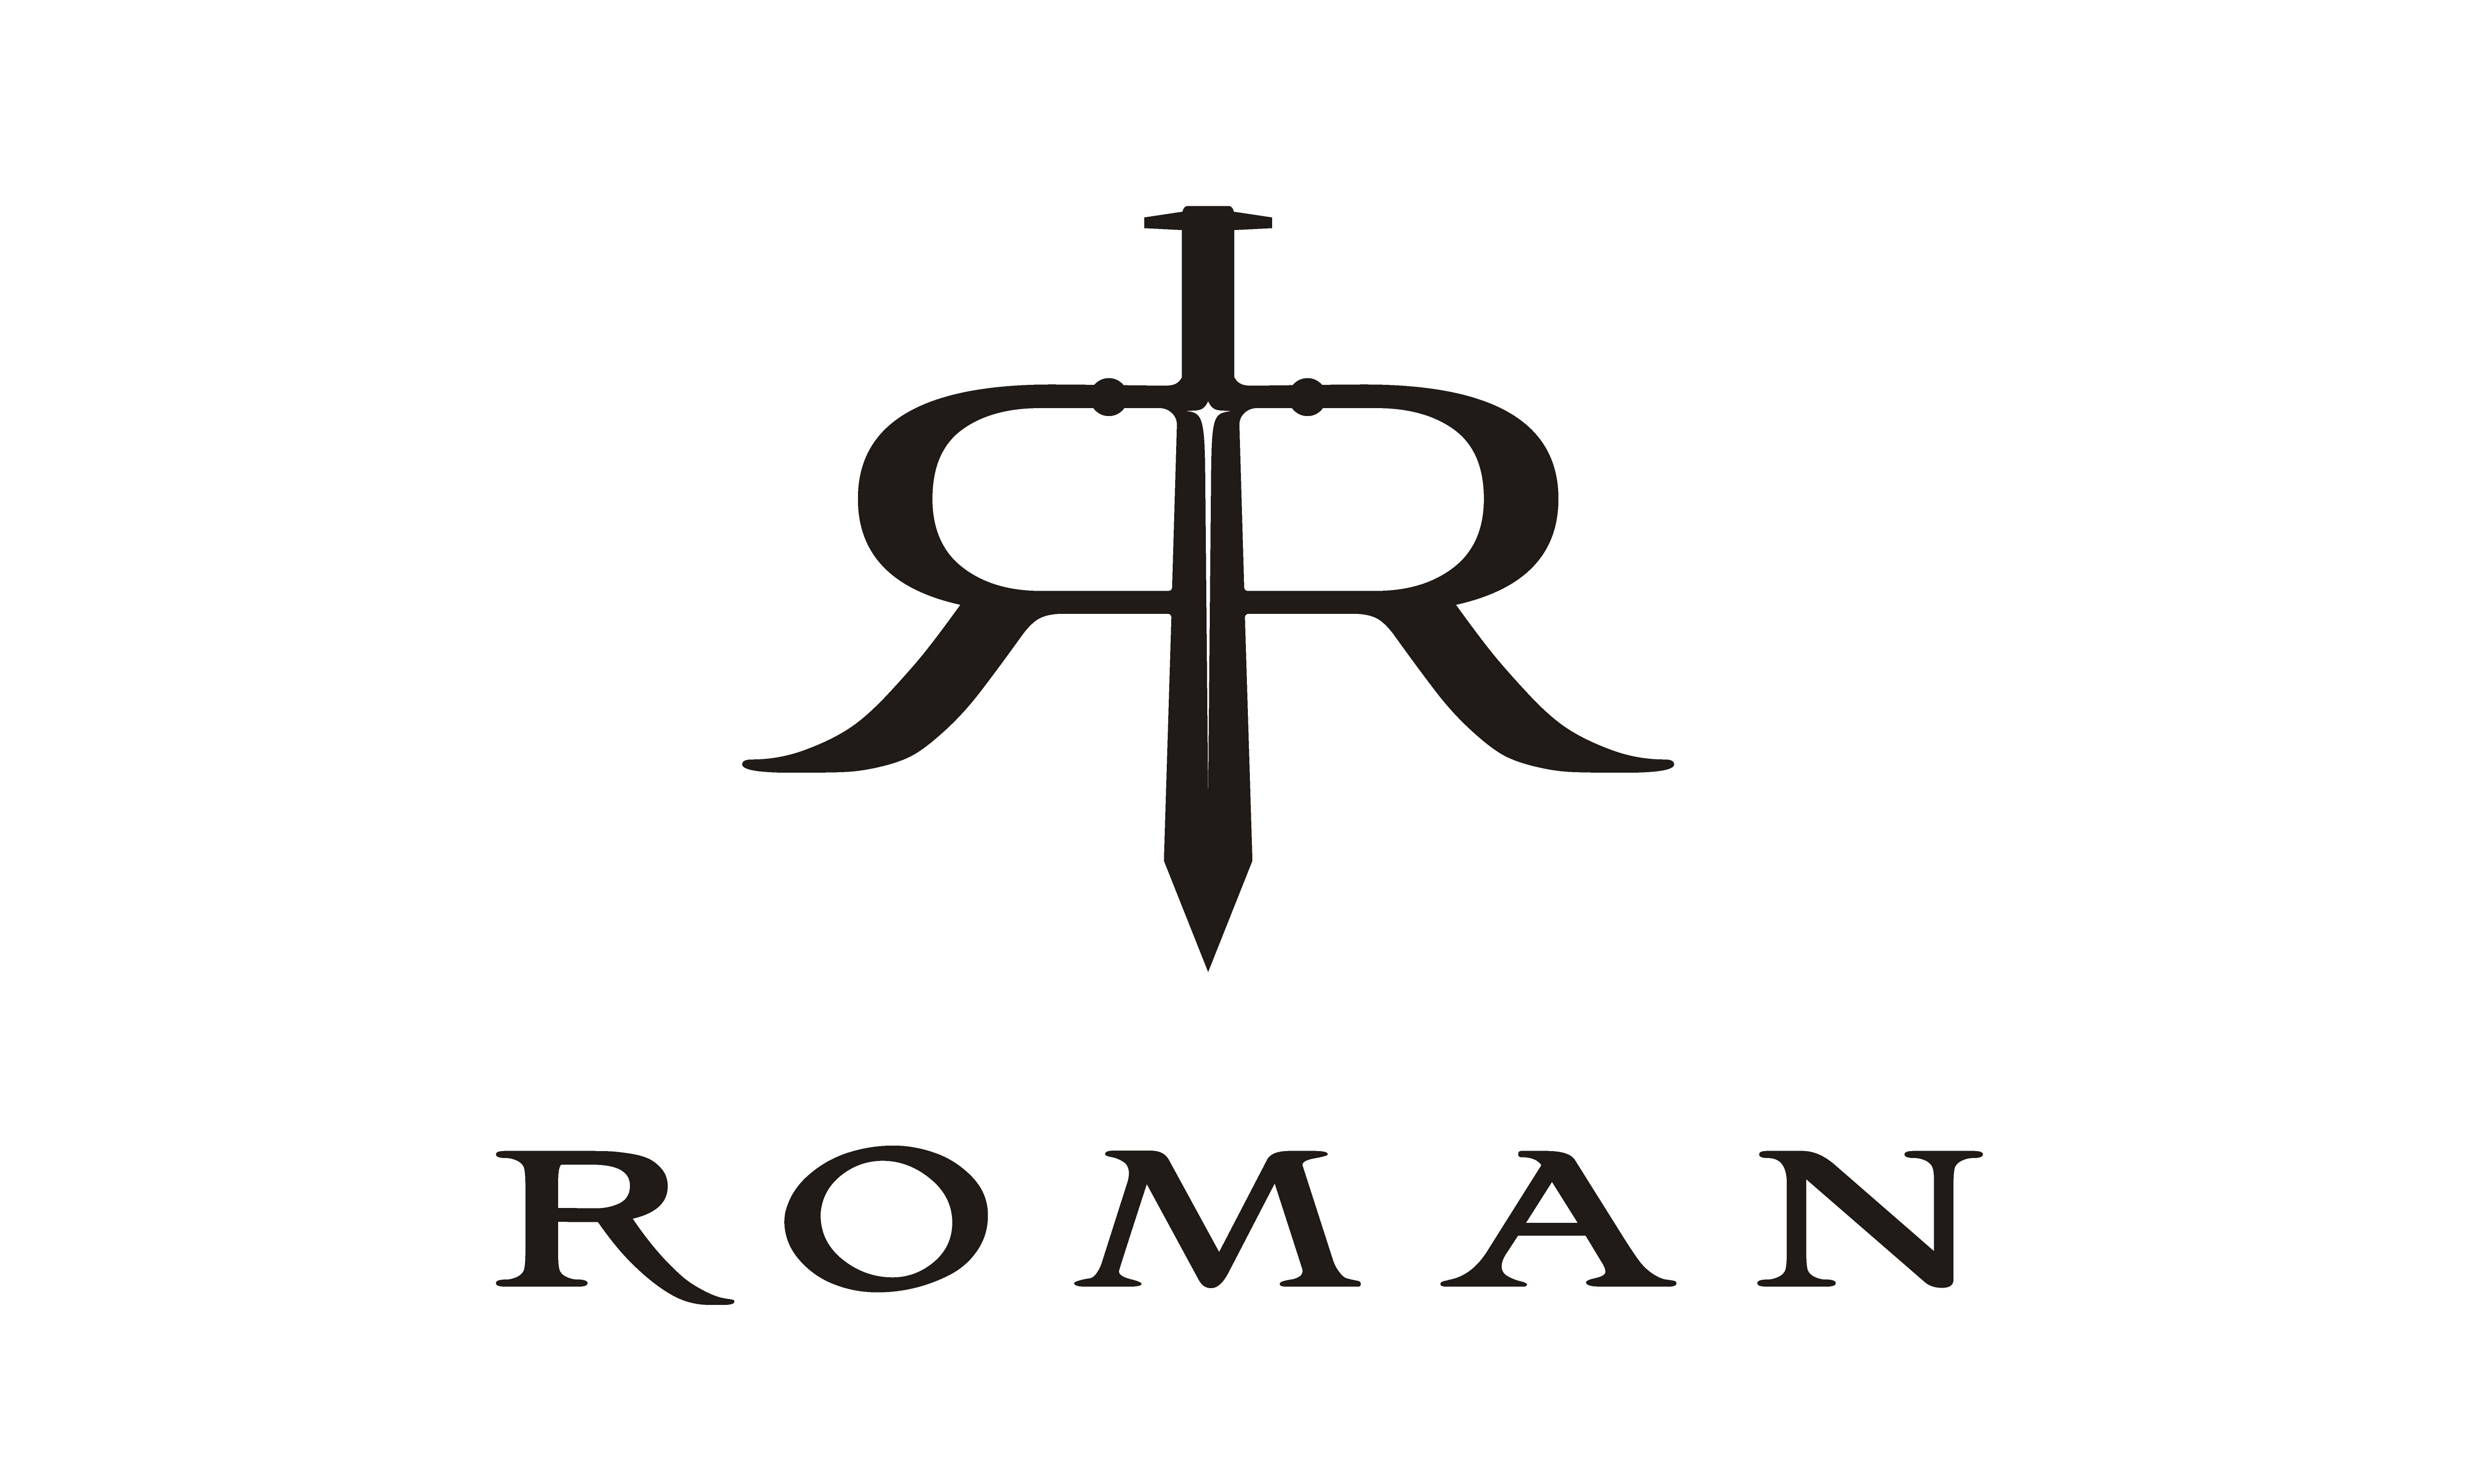 Download Free Sword Initial Letter R Rr Roman Logo Graphic By Enola99d for Cricut Explore, Silhouette and other cutting machines.